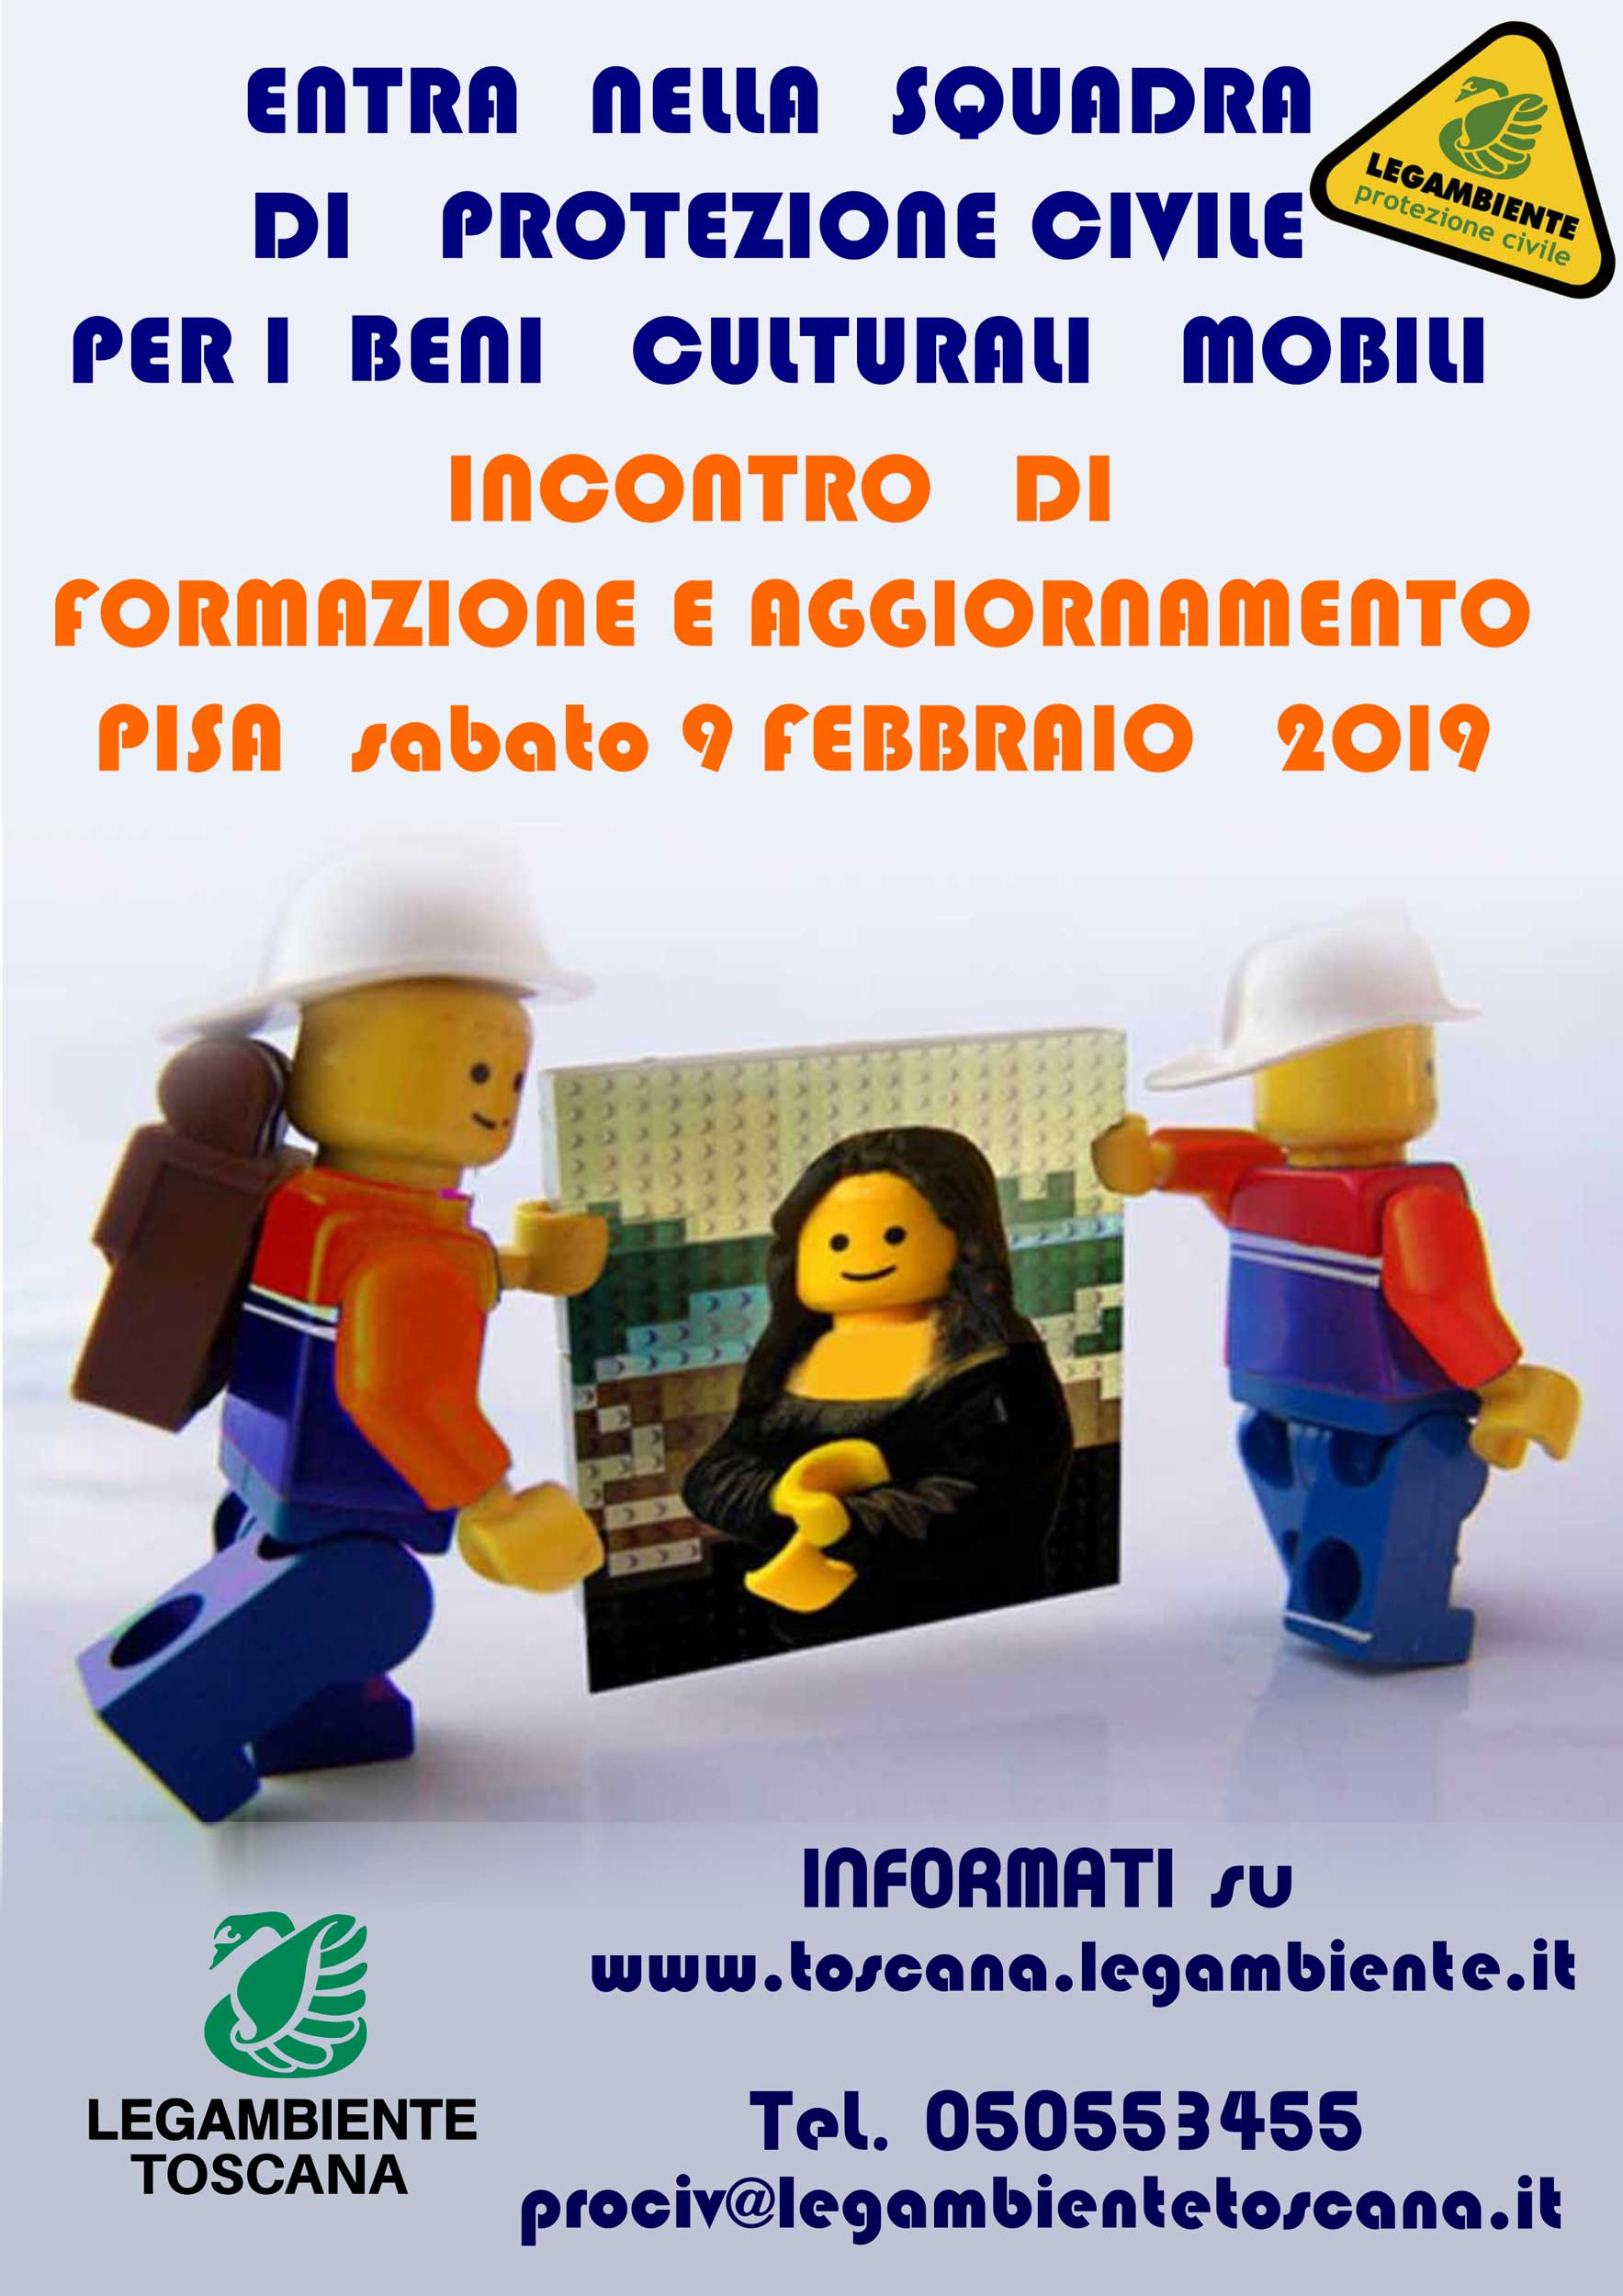 evento-prot-civile-toscana-full